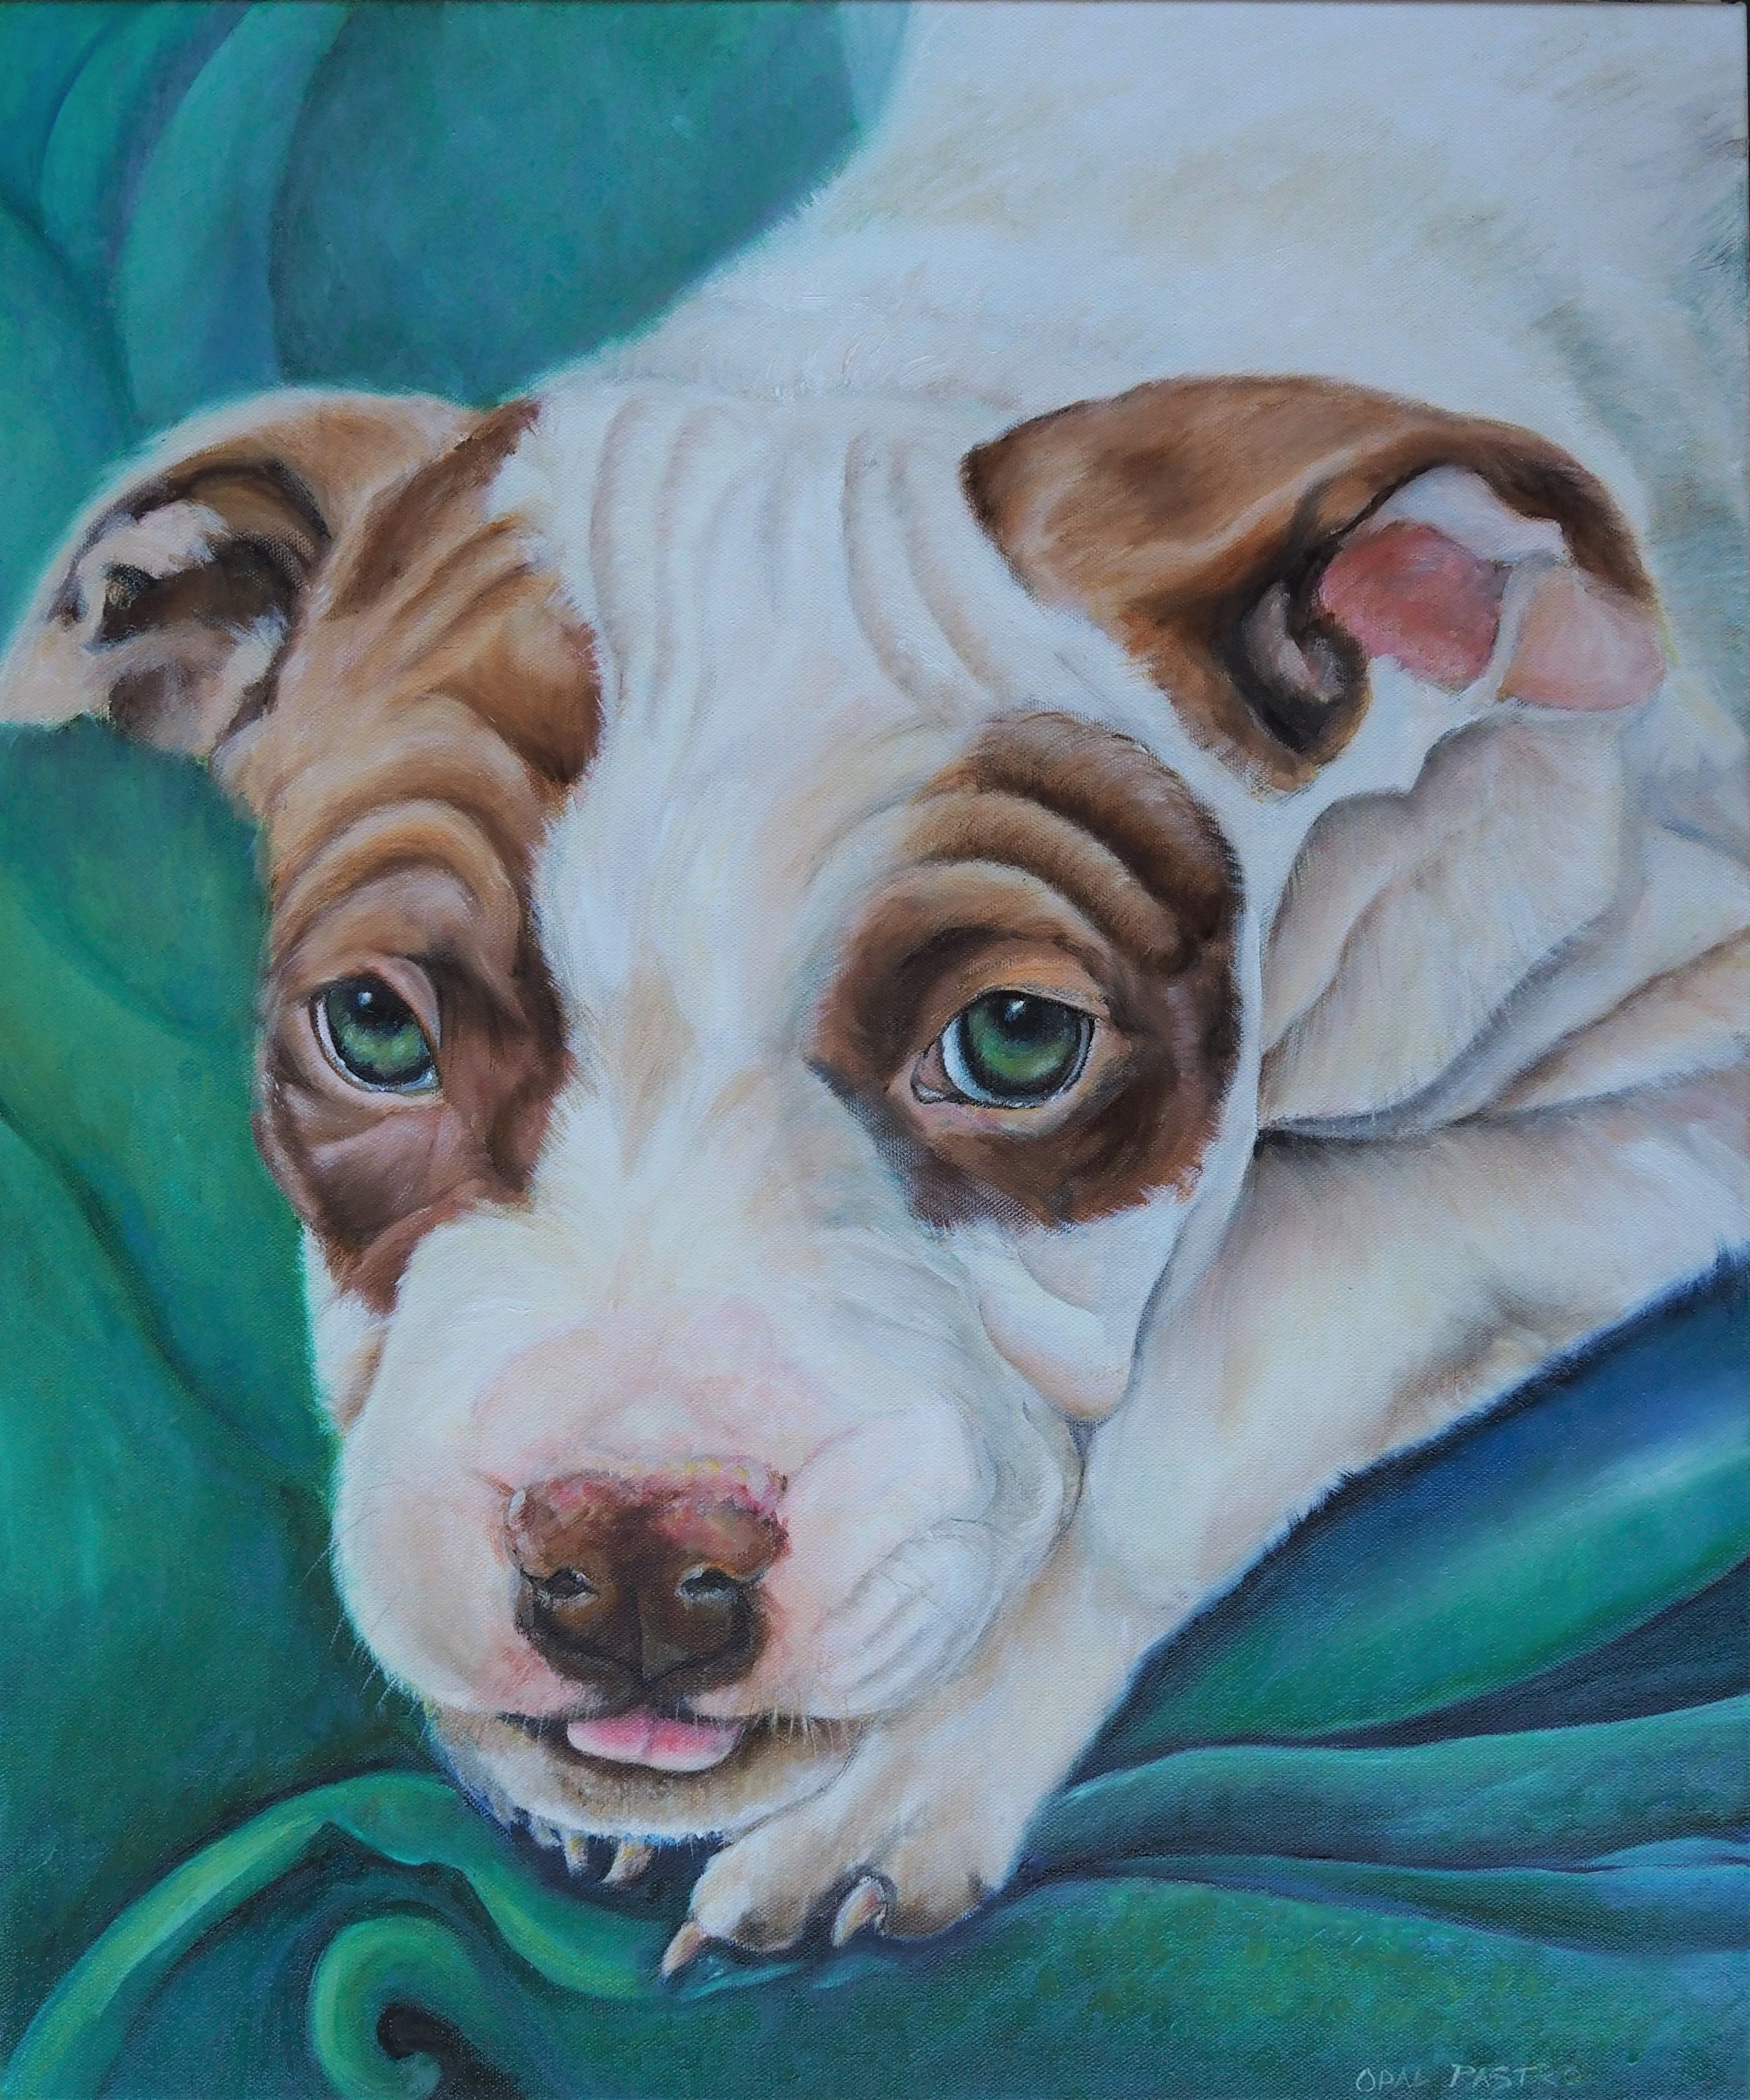 CUSTOM DOG PORTRAIT OF AMERICAN PITBULL TAN AND WHITE WITH GREEN BLANKET BY OPAL PASTRO ART